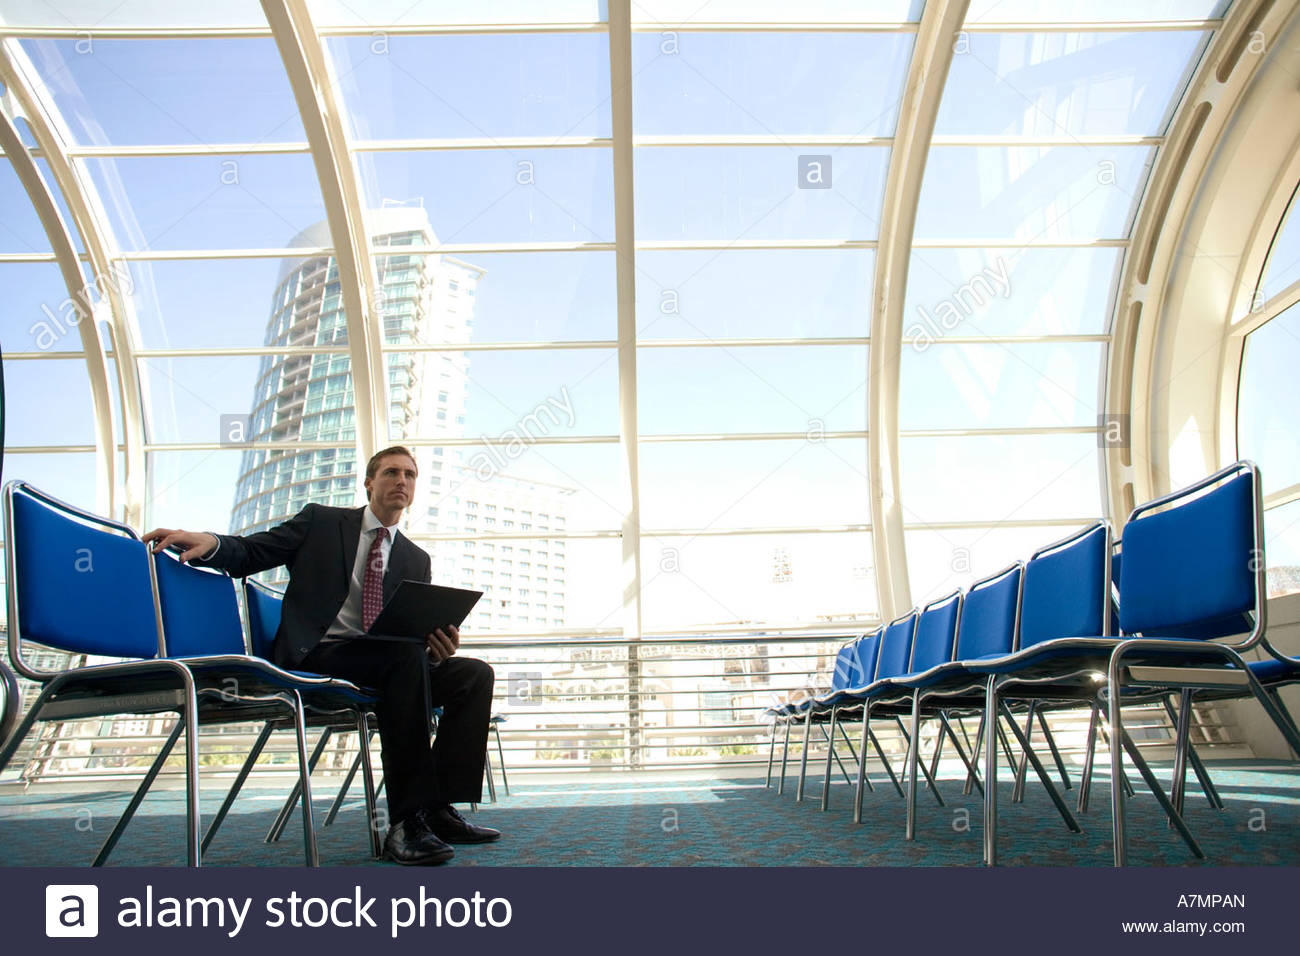 Businessman waiting in airport departure lounge using laptop side view - Stock Image